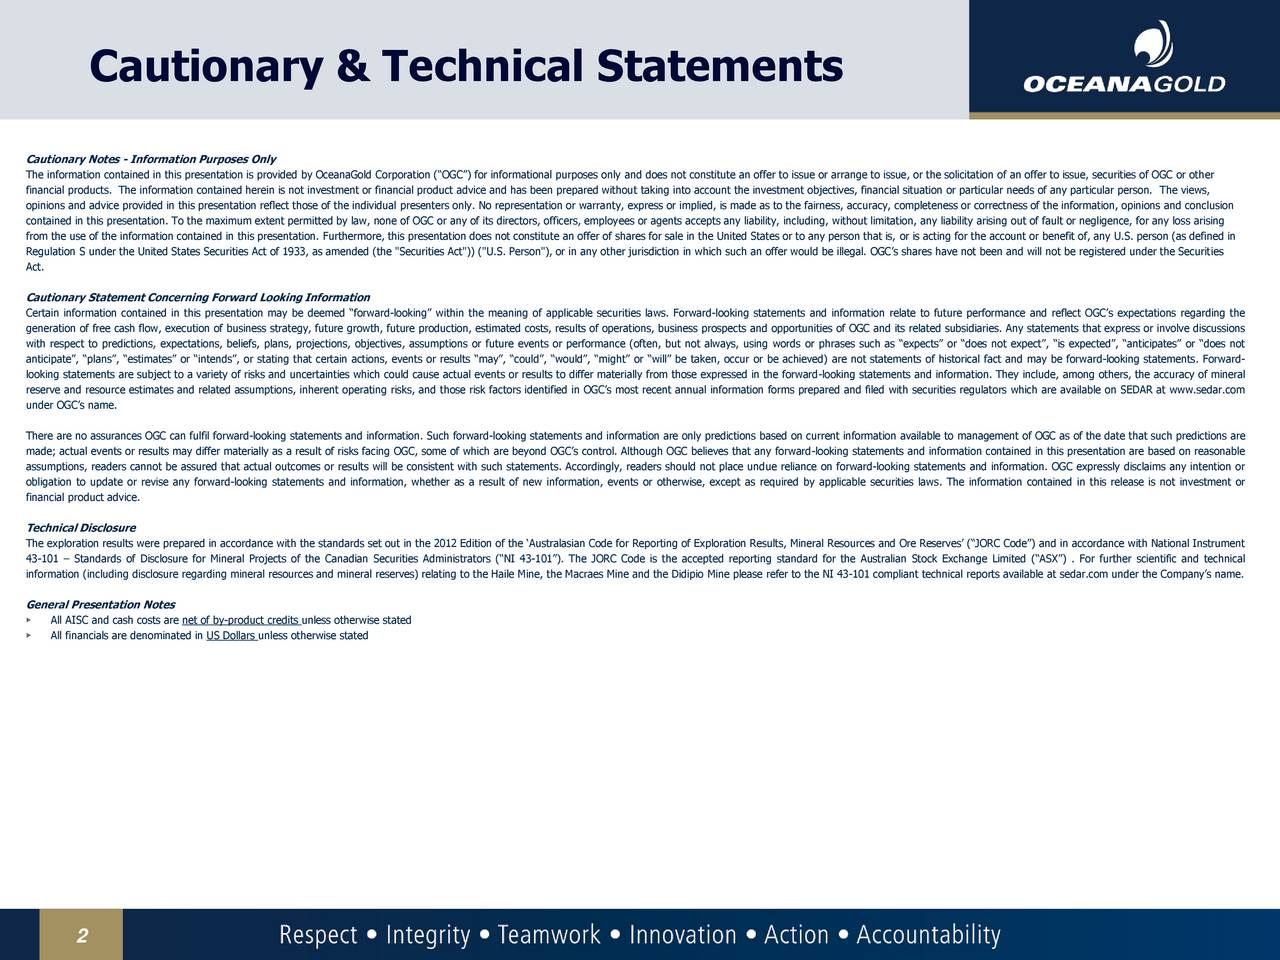 """Cautionary Notes - Information Purposes Only The information contained in this presentation is provided by OceanaGold Corporation (OGC) for informational purposes only and does not constitute an offer to issue or arrange to issue, or the solicitation of an offer to issue, securities of OGC or other financial products. The information contained herein is not investment or financial product advice and has been prepared without taking into account the investment objectives, financial situation or particular needs of any particular person. The views, opinions and advice provided in this presentation reflect those of the individual presenters only. No representation or warranty, express or implied, is made as to the fairness, accuracy, completeness or correctness of the information, opinions and conclusion contained in this presentation. To the maximum extent permitted by law, none of OGC or any of its directors, officers, employees or agents accepts any liability, including, without limitation, any liability arising out of fault or negligence, for any loss arising from the use of the information contained in this presentation. Furthermore, this presentation does not constitute an offer of shares for sale in the United States or to any person that is, or is acting for the account or benefit of, any U.S. person (as defined in Regulation S under the United States Securities Act of 1933, as amended (the """"Securities Act"""")) (""""U.S. Person""""), or in any other jurisdiction in which such an offer would be illegal. OGCs shares have not been and will not be registered under the Securities Act. Cautionary Statement Concerning Forward Looking Information Certain information contained in this presentation may be deemed forward-looking within the meaning of applicable securities laws. Forward-looking statements and information relate to future performance and reflect OGCs expectations regarding the generation of free cash flow, execution of business strategy, future growth, future produ"""